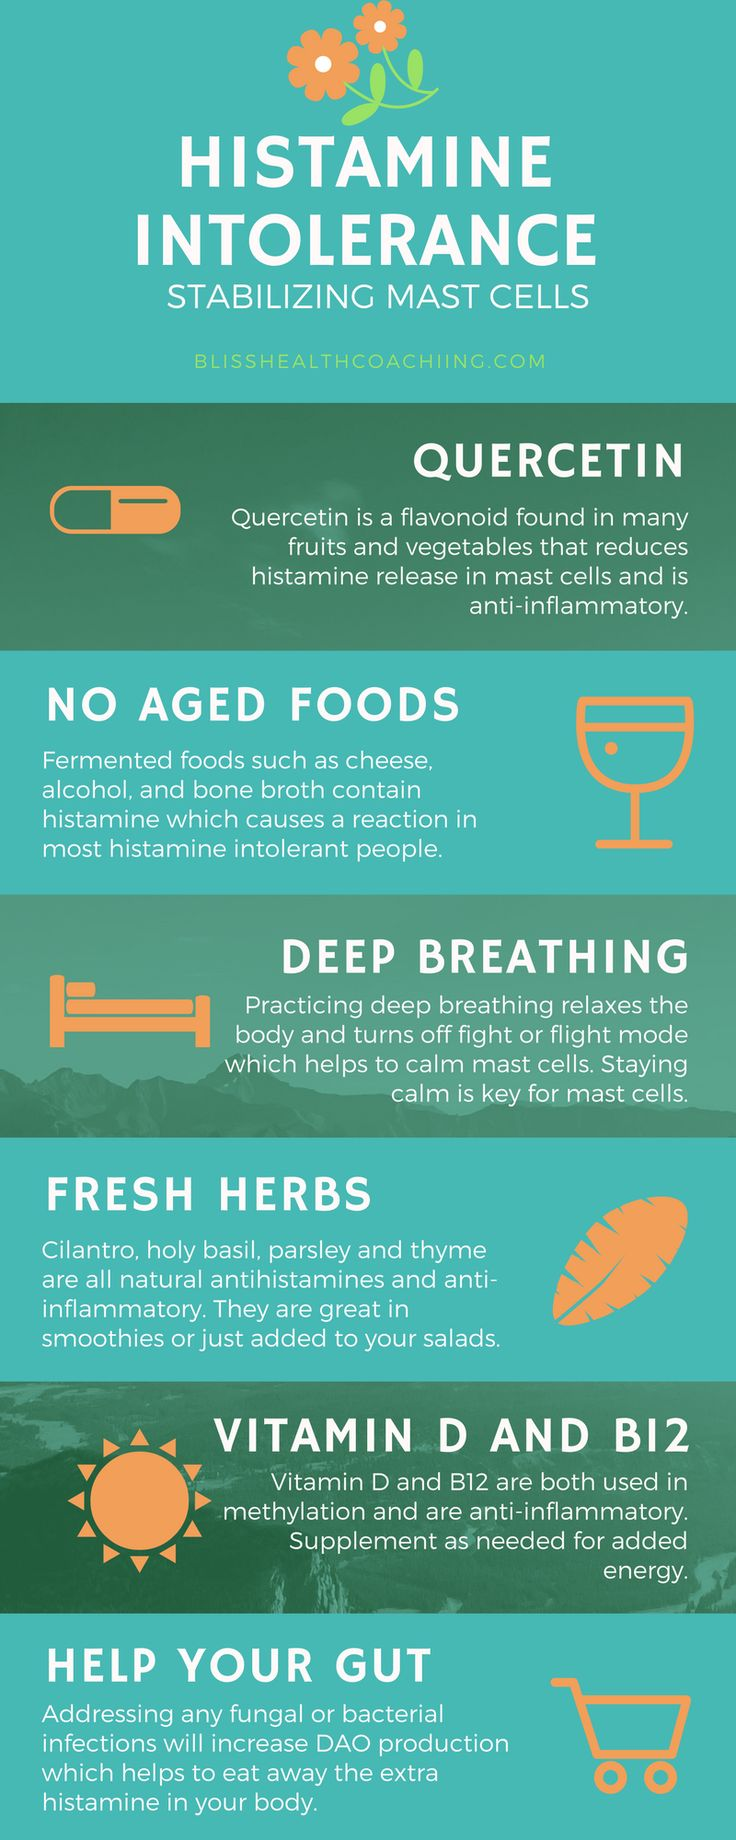 Histamine intolerance or mast cell disorders don't have to get the best of you. Learn how to stabilize those mast cells and reduce symptoms.